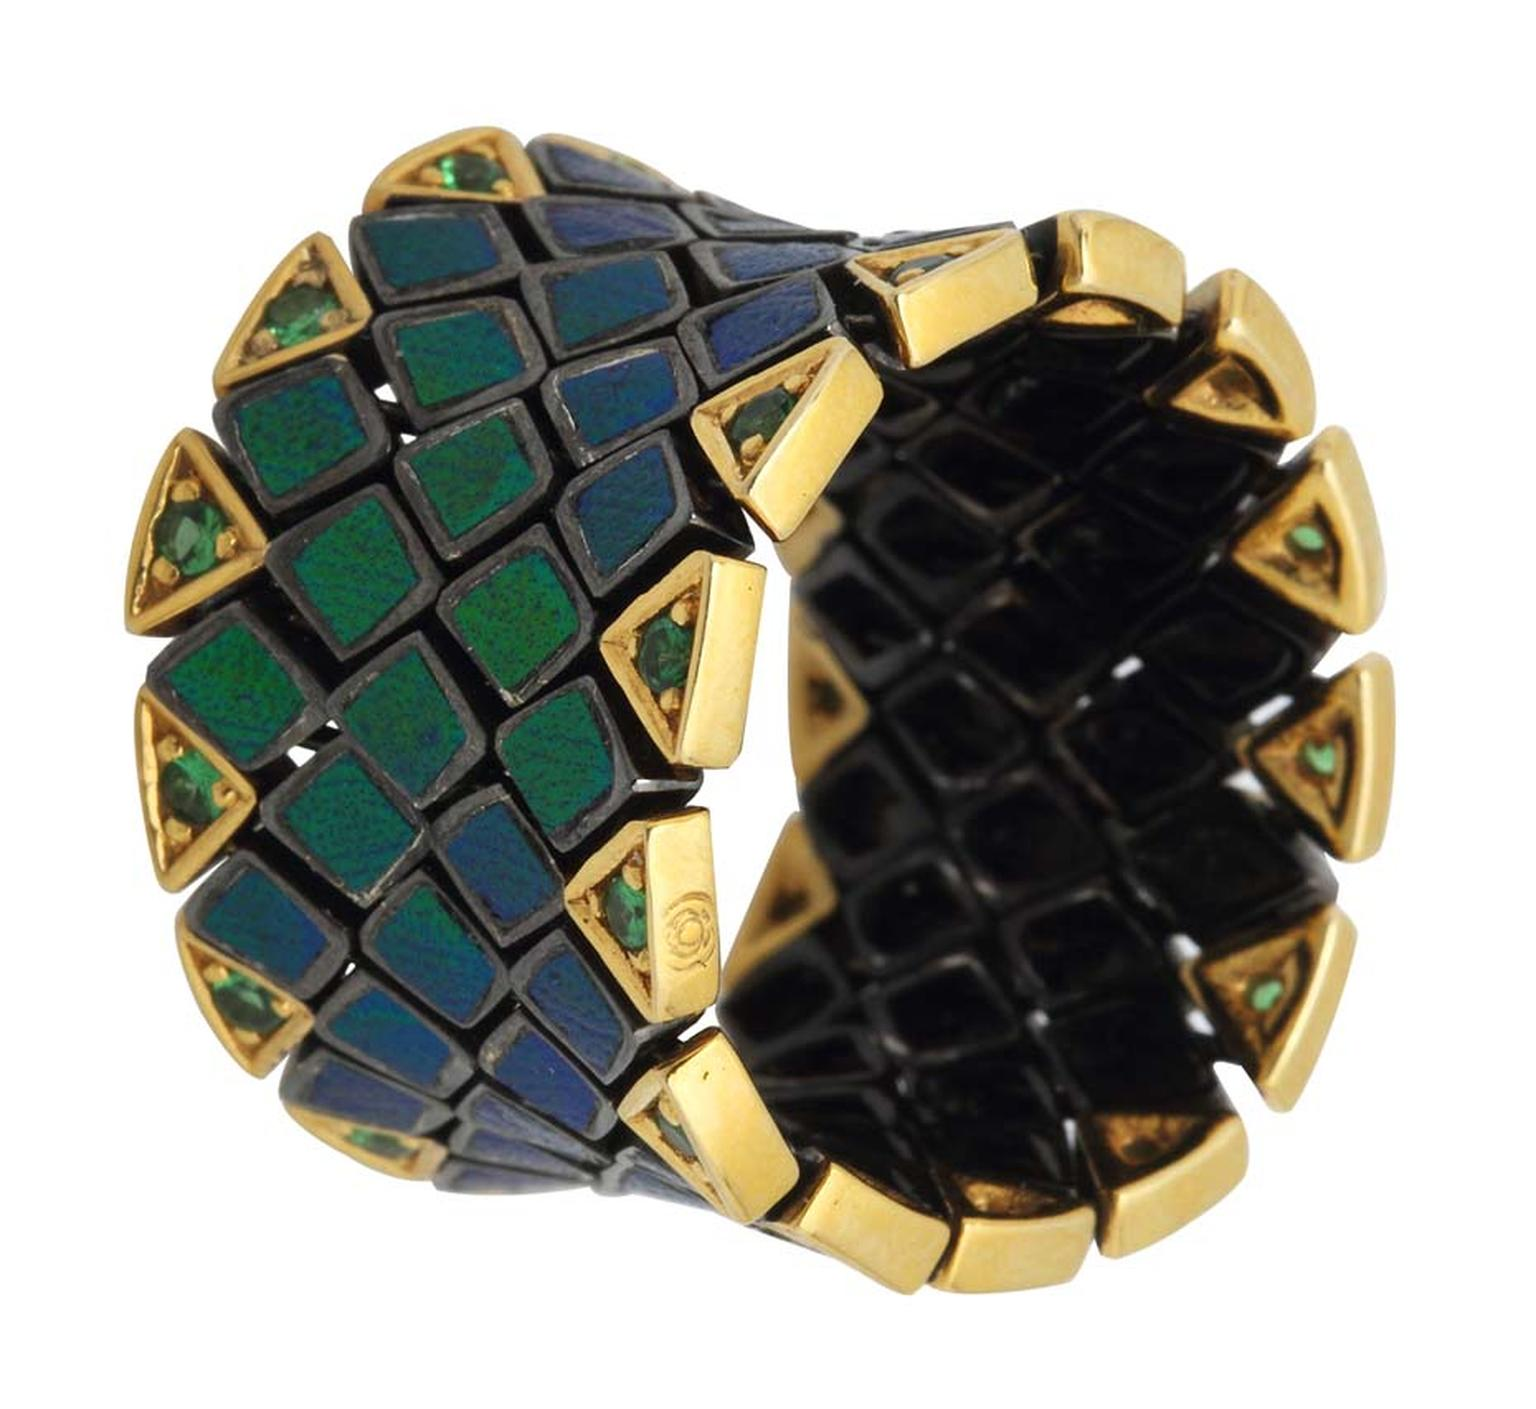 Lotus Arts de Vivre for Katharine Pooley Flexible Scarab ring in flexible silver and gold, with five rows of tsavorites (£2,790).